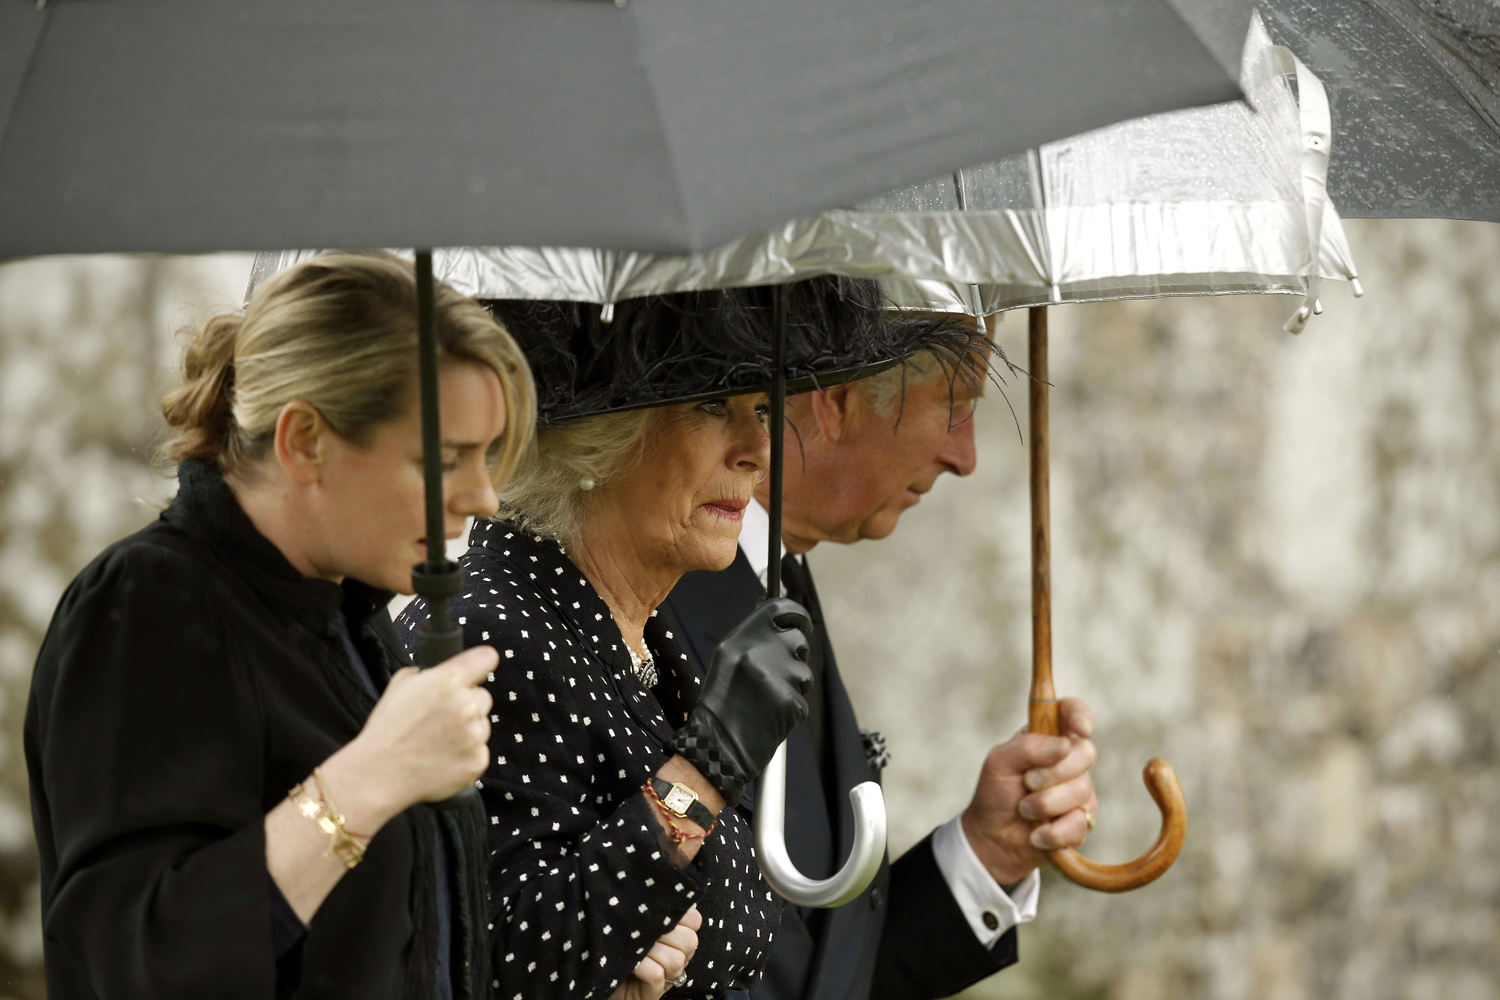 May 1, 2014. Britain's Prince Charles, Prince of Wales (R) arrives with his wife Camilla, the Duchess of Cornwall (C), and her daughter Laura Lopes for the the funeral of her brother, Mark Shand, at Holy Trinity Church in Stourpaine, Dorset, England.